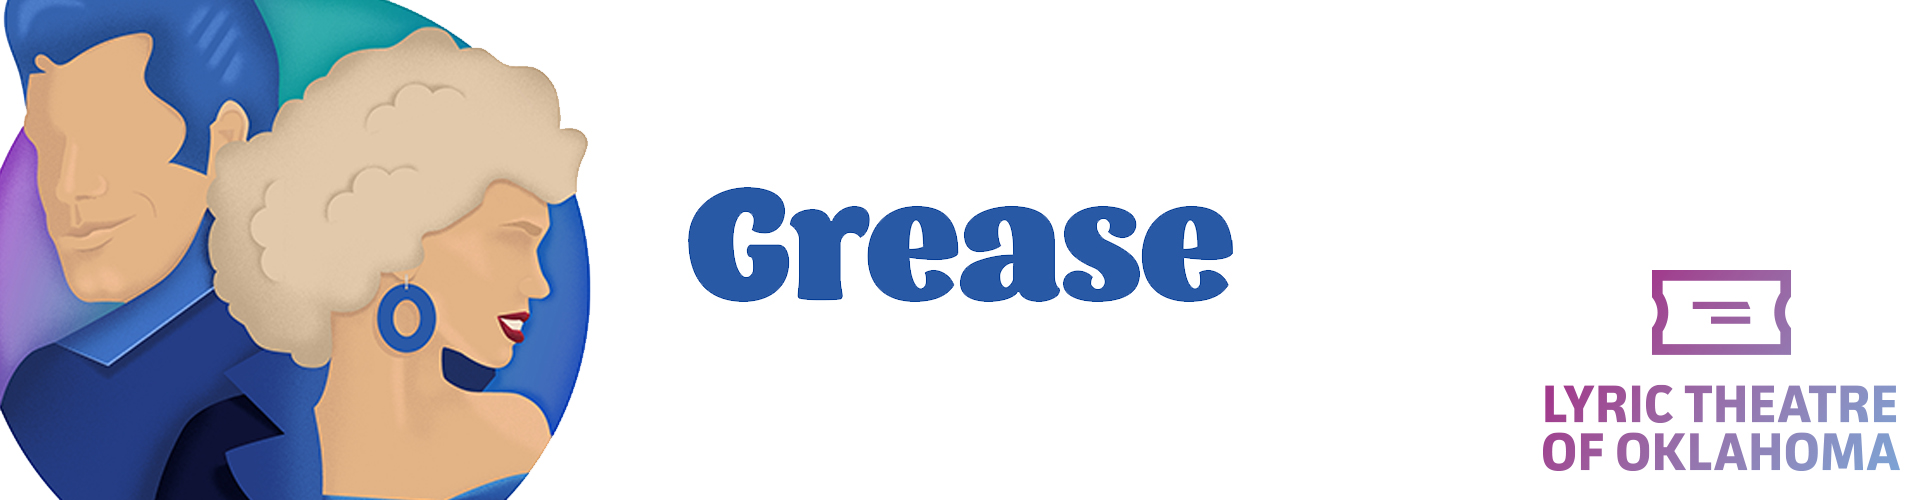 Grease - Cancelled